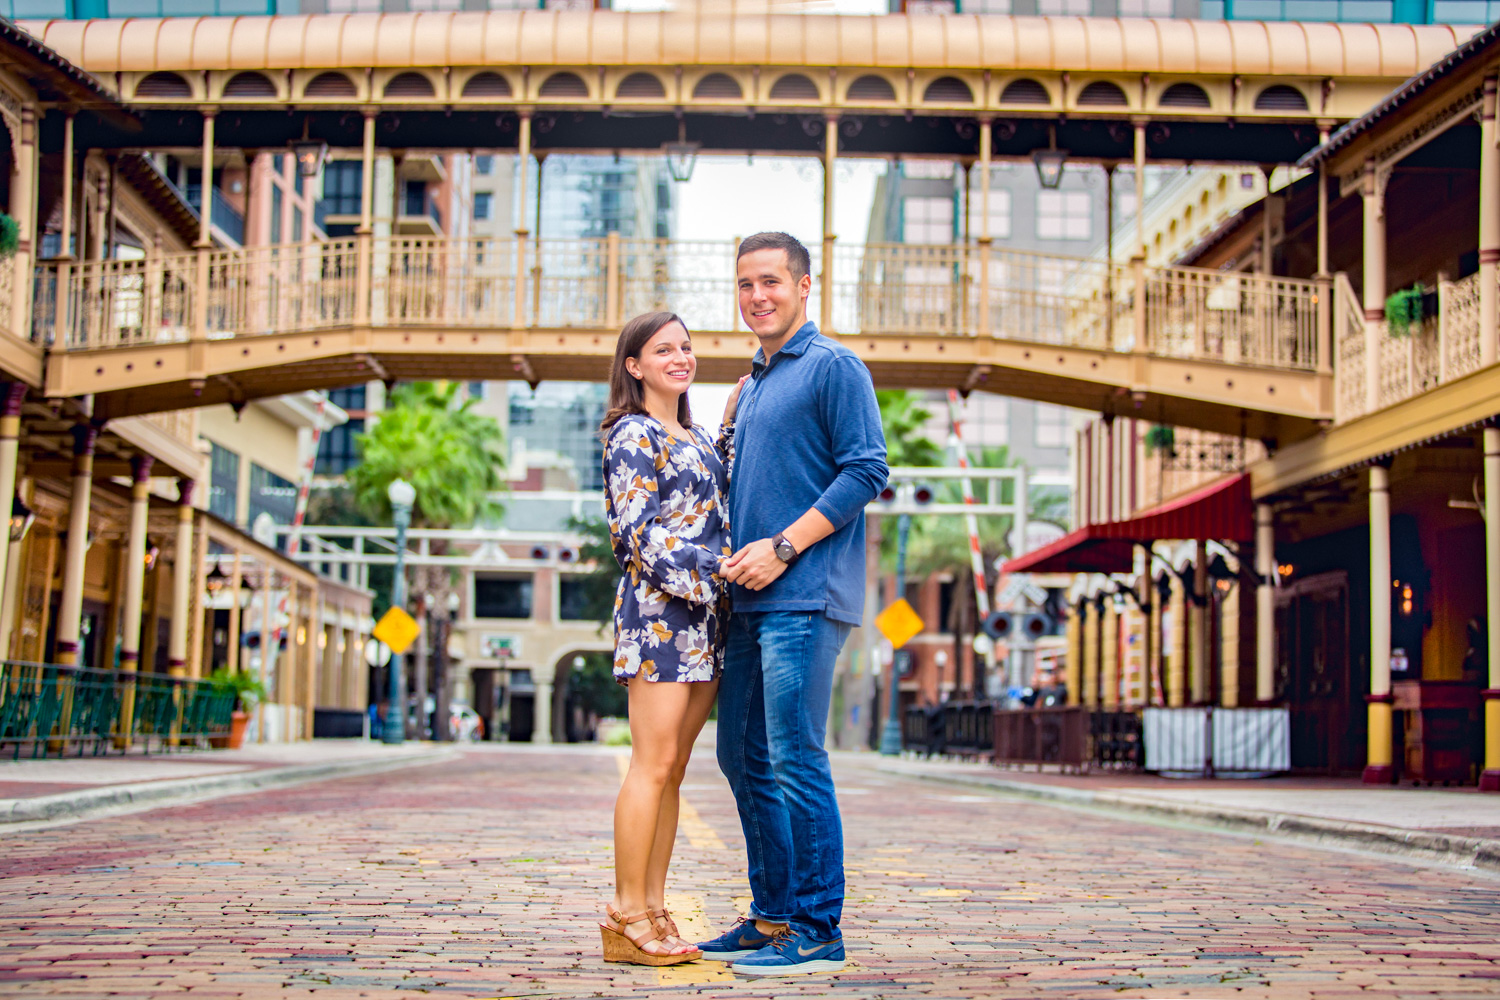 22 Oct 15Allie + David - Church Street Downtown orlando walkabout engagement - organic wedding photography 11.jpg